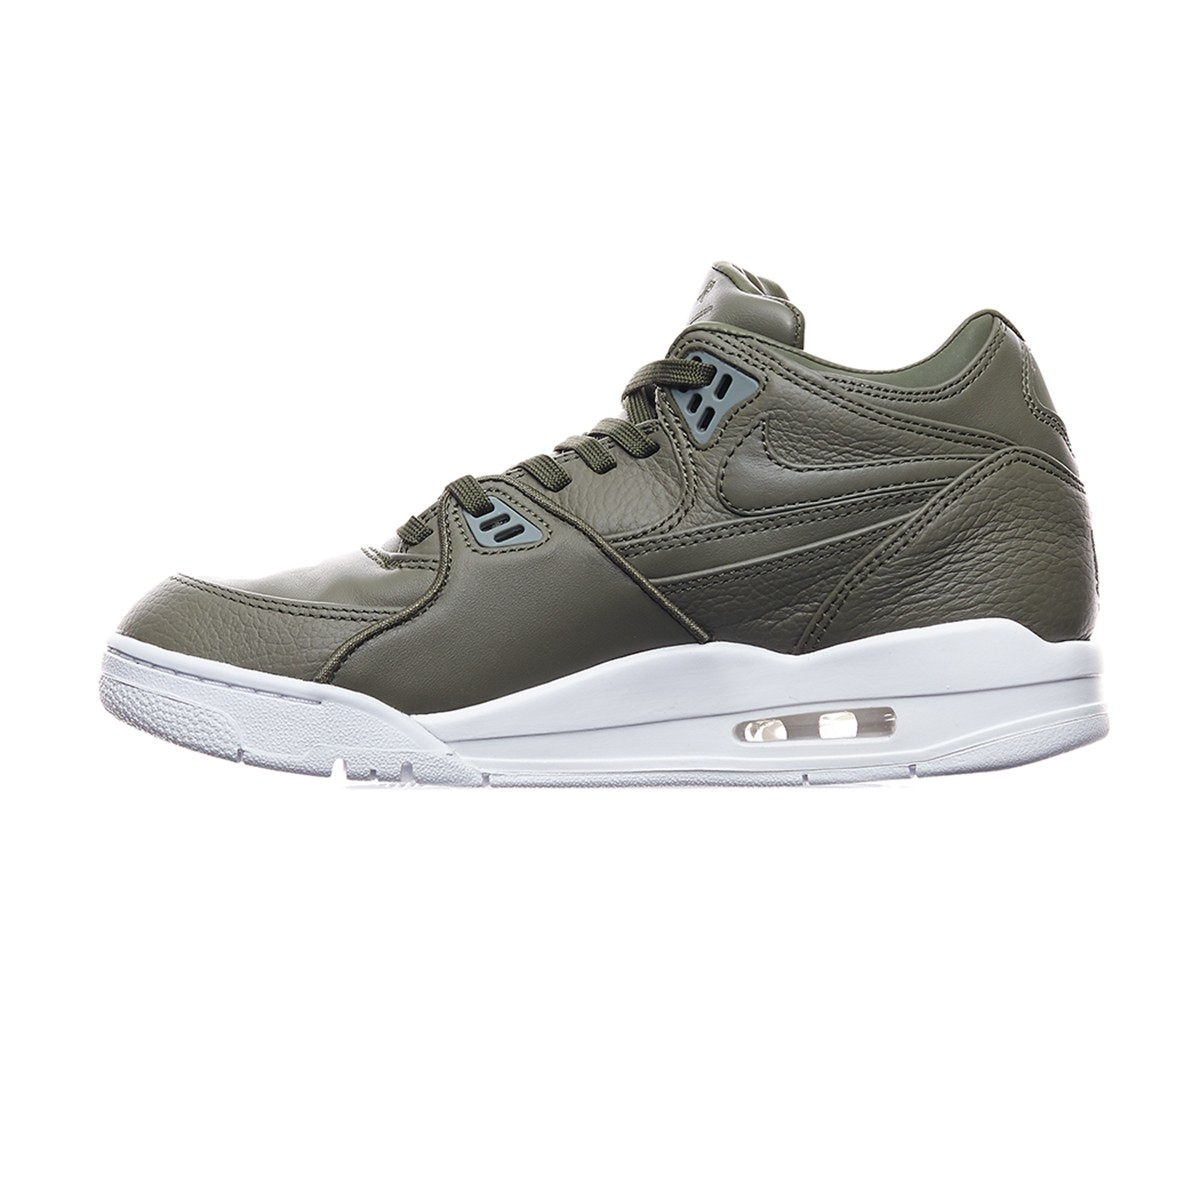 f5c0f9e52d76 Lyst - Nike Air Flight 89 Sneakers in Green for Men